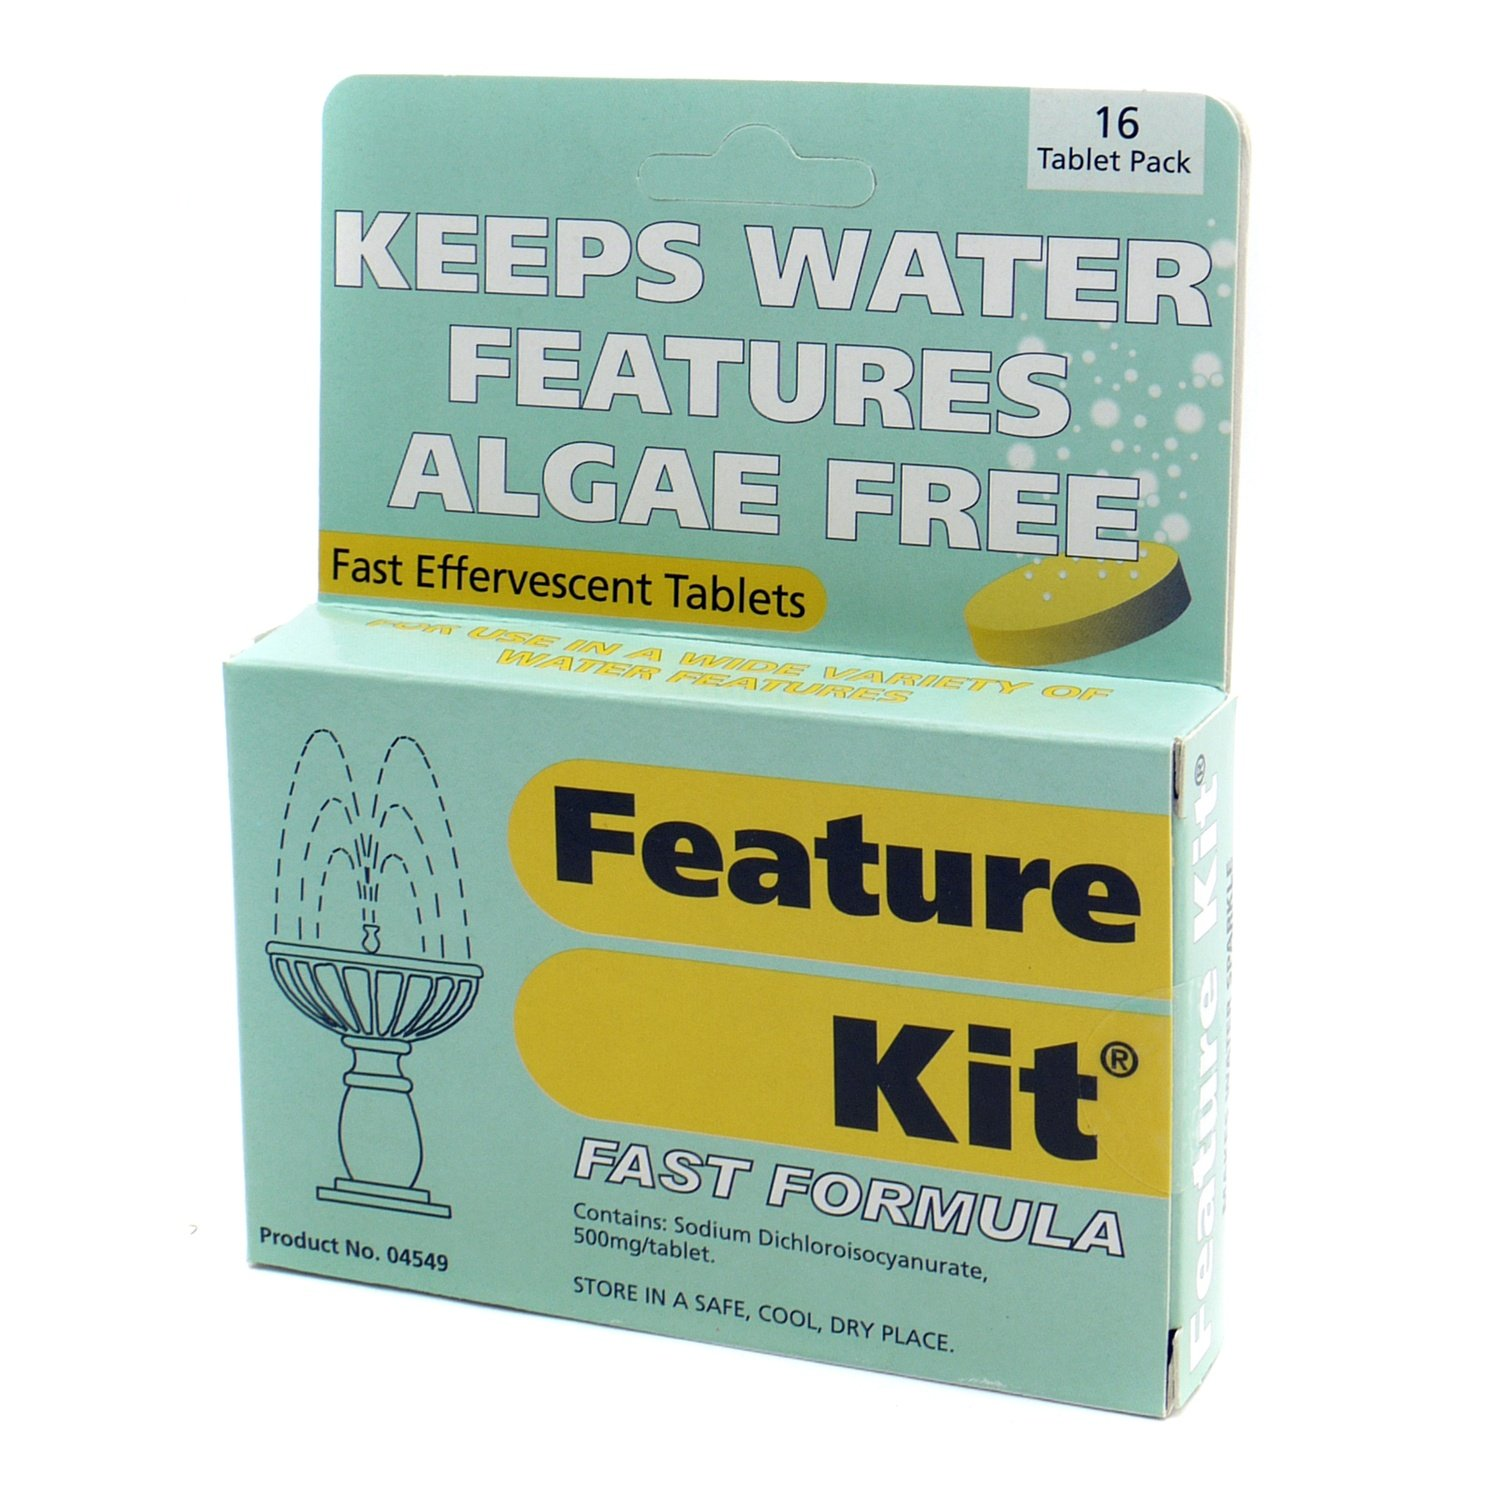 Nishikoi Feature Kit (16 Tablets) Helps Remove Algae in Water Features